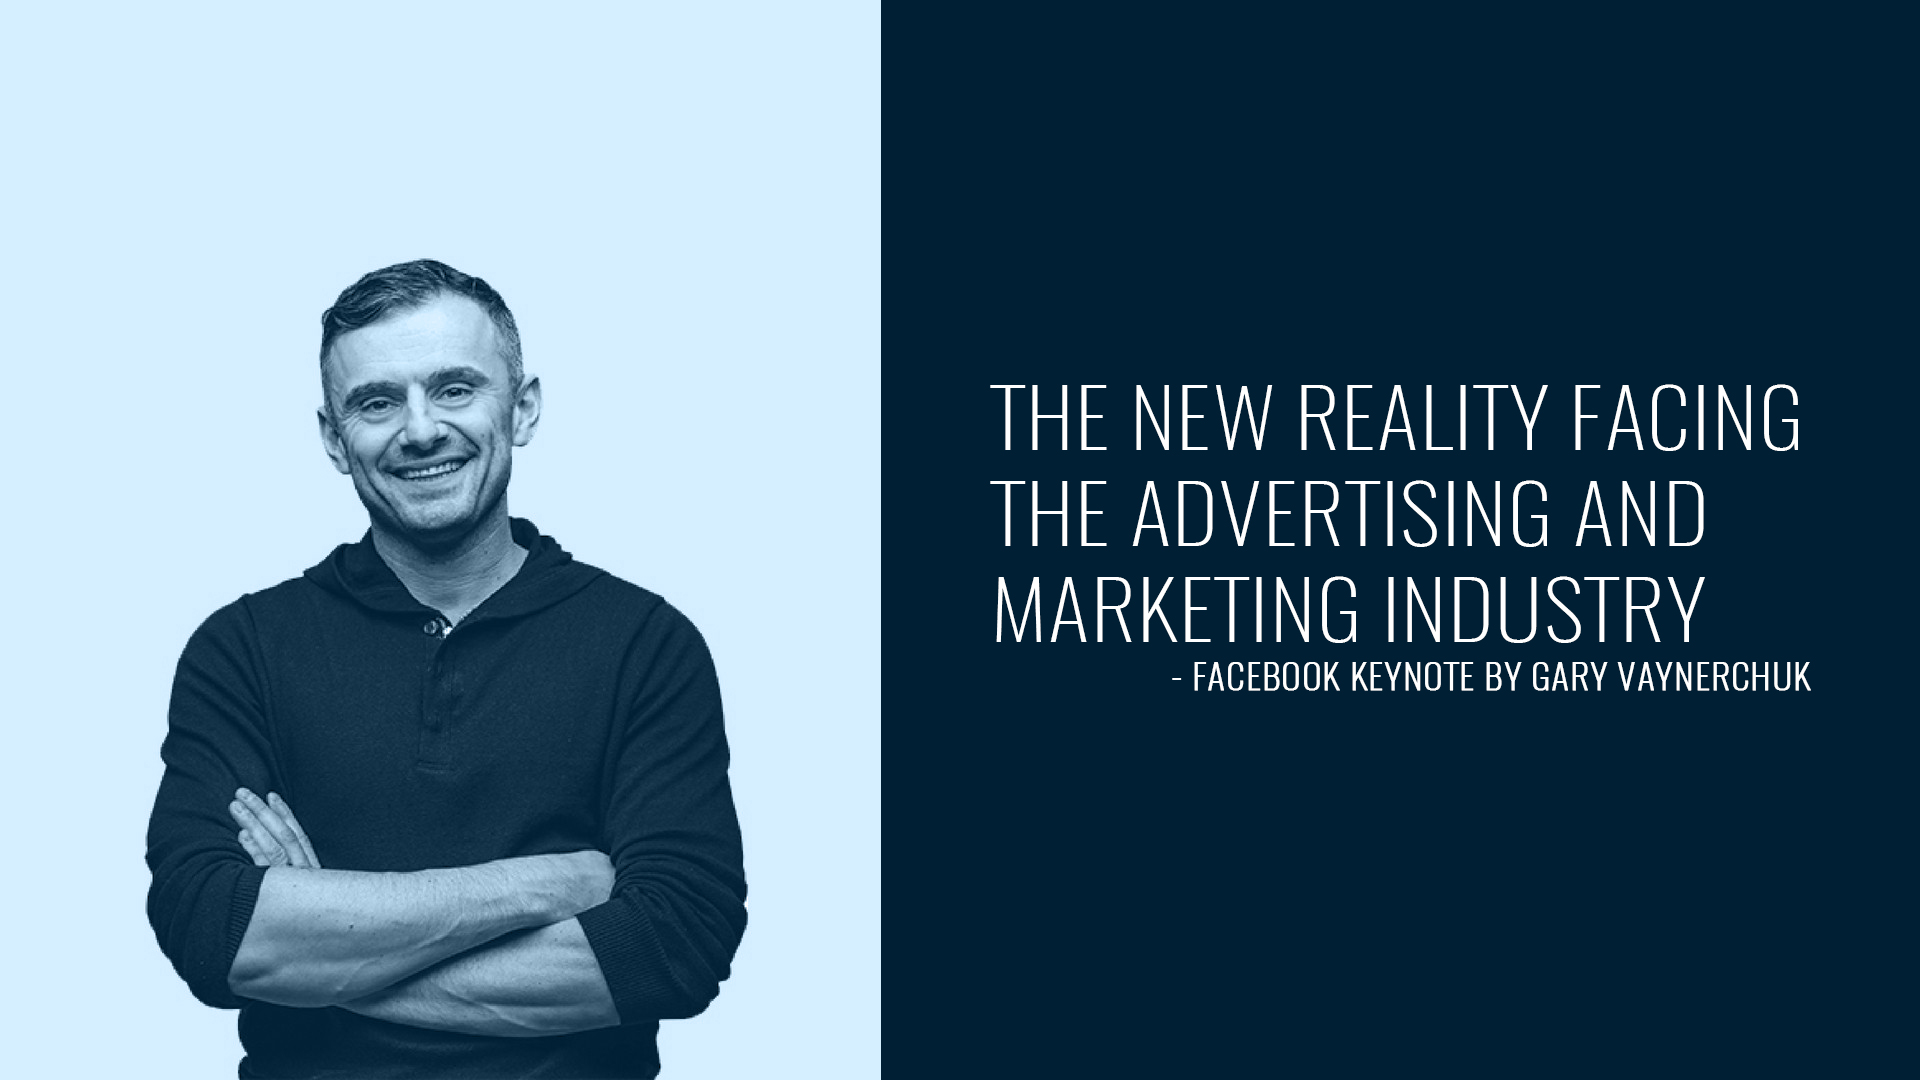 The New Reality Facing the Advertising and Marketing Industry   Facebook Keynote By Gary Vaynerchuk